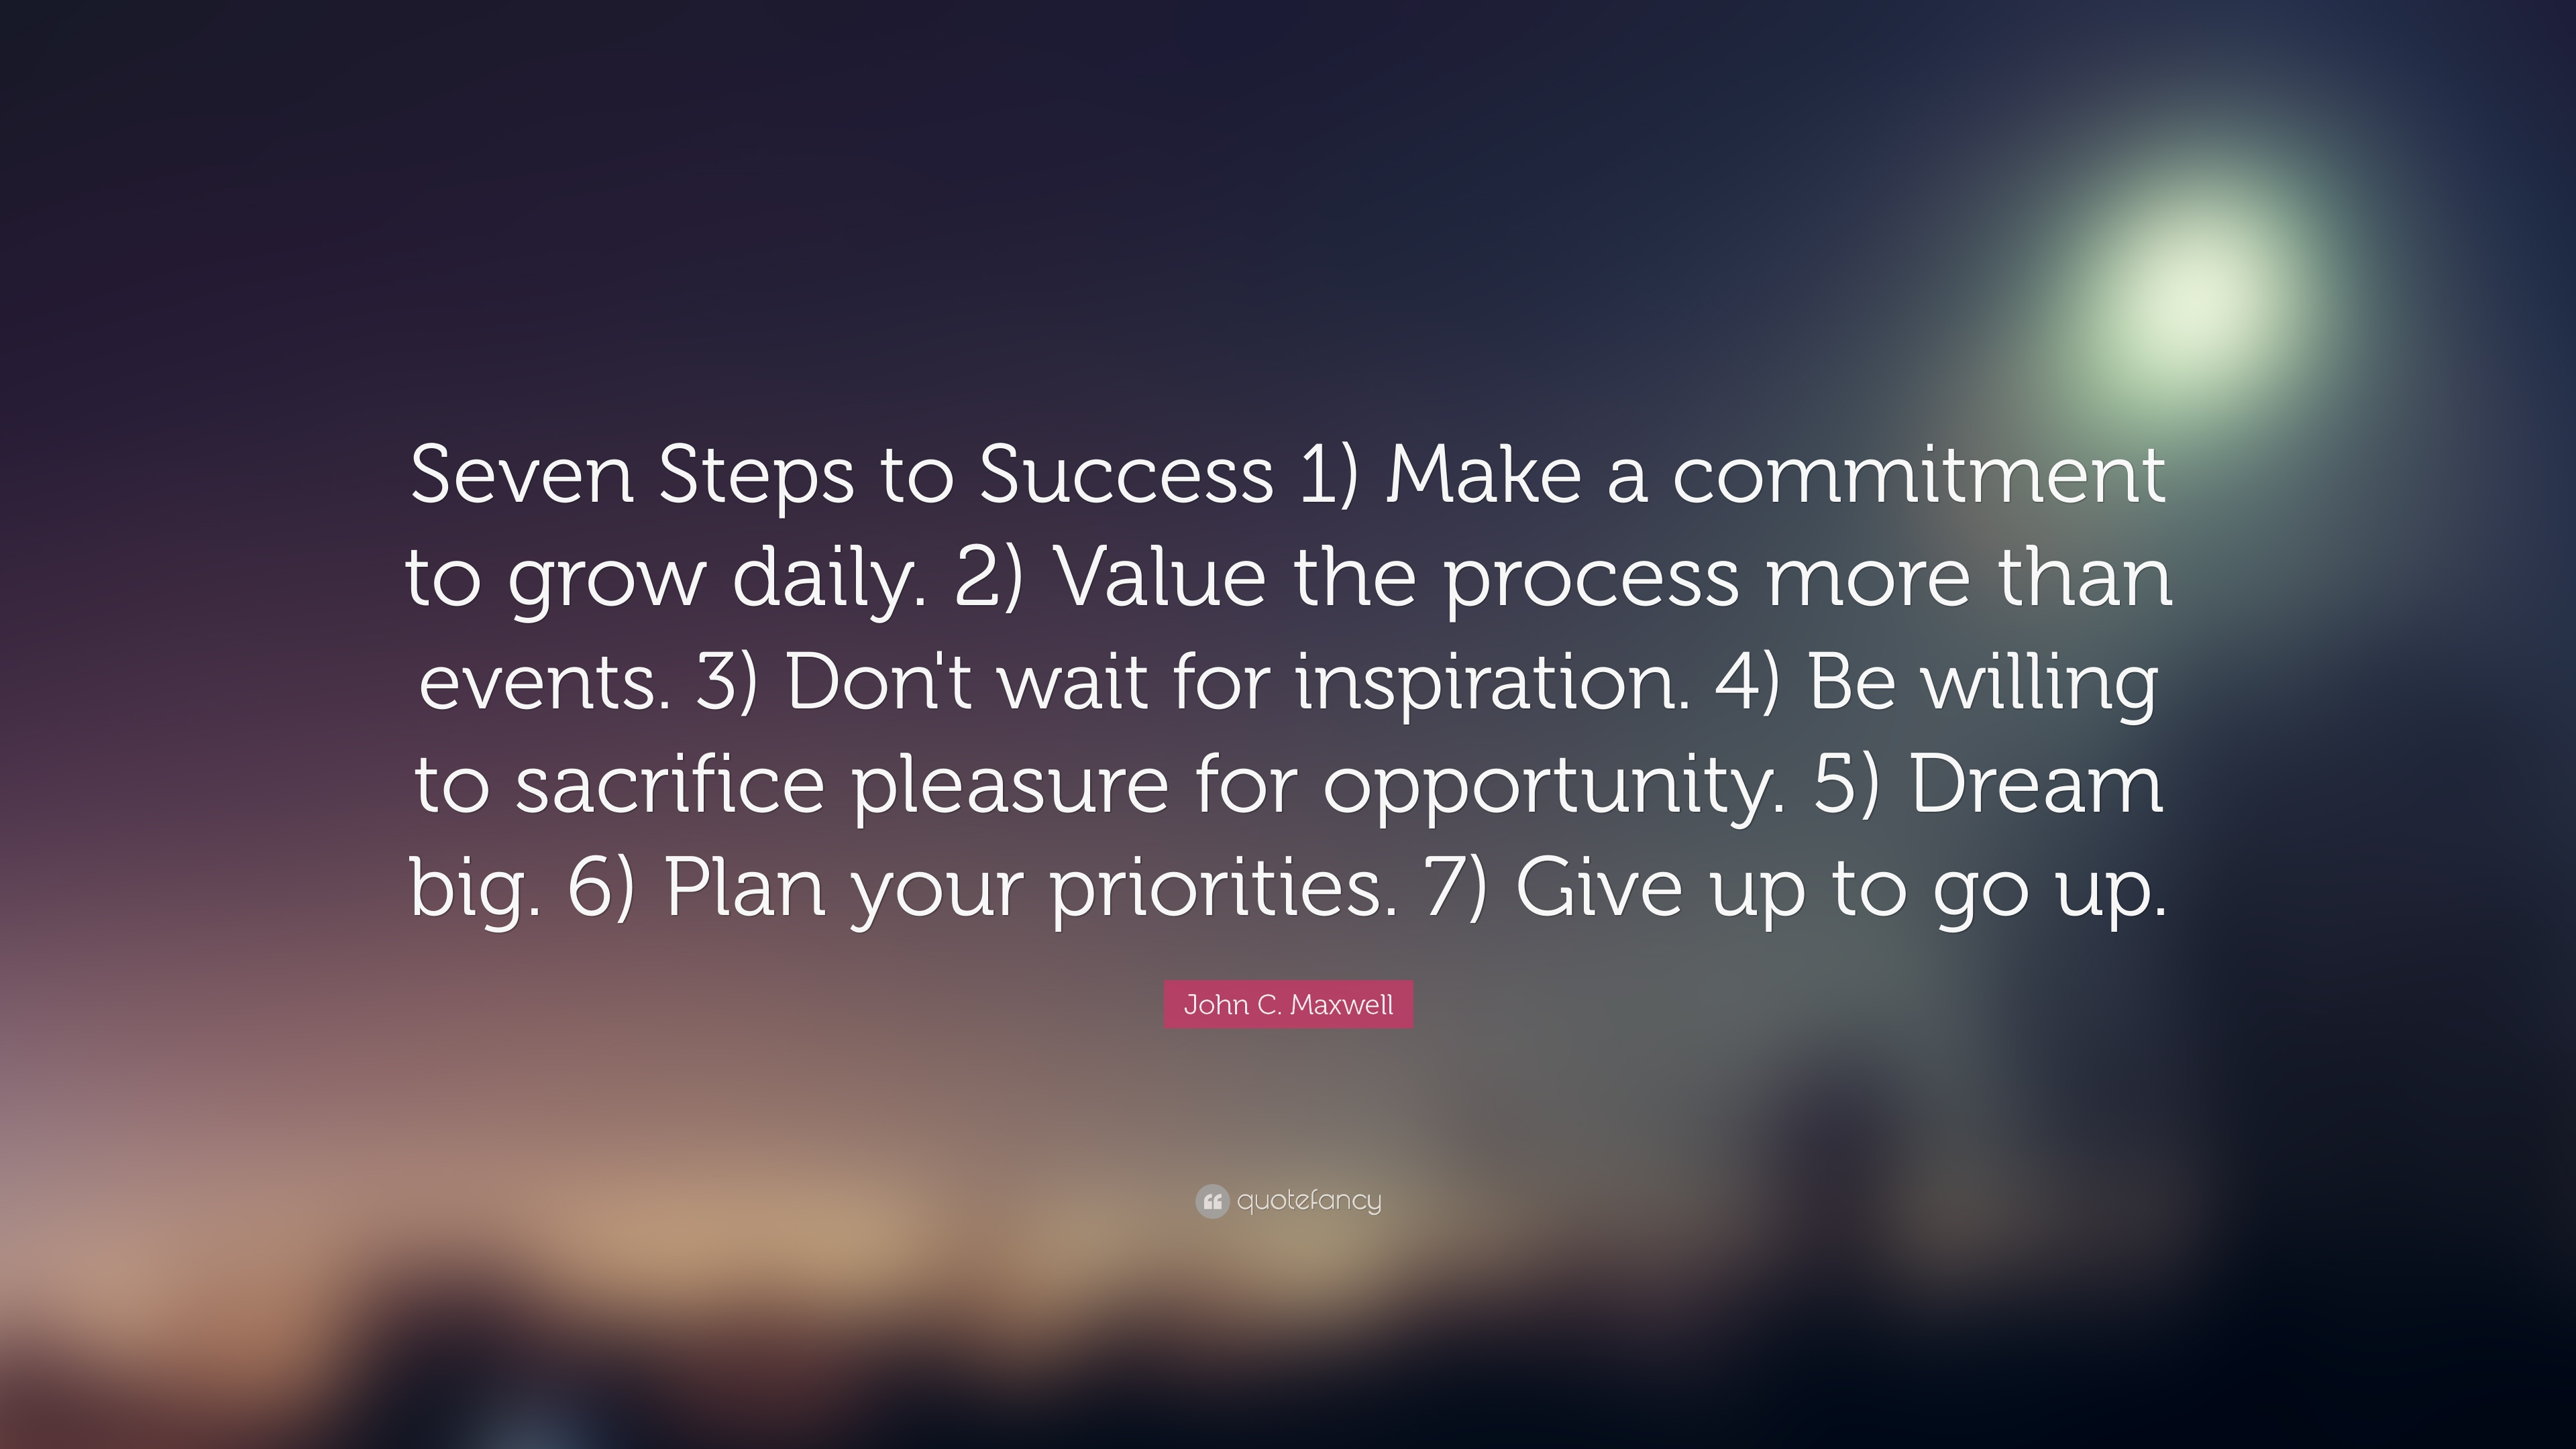 John C Maxwell Quote Seven Steps To Success 1 Make A Commitment